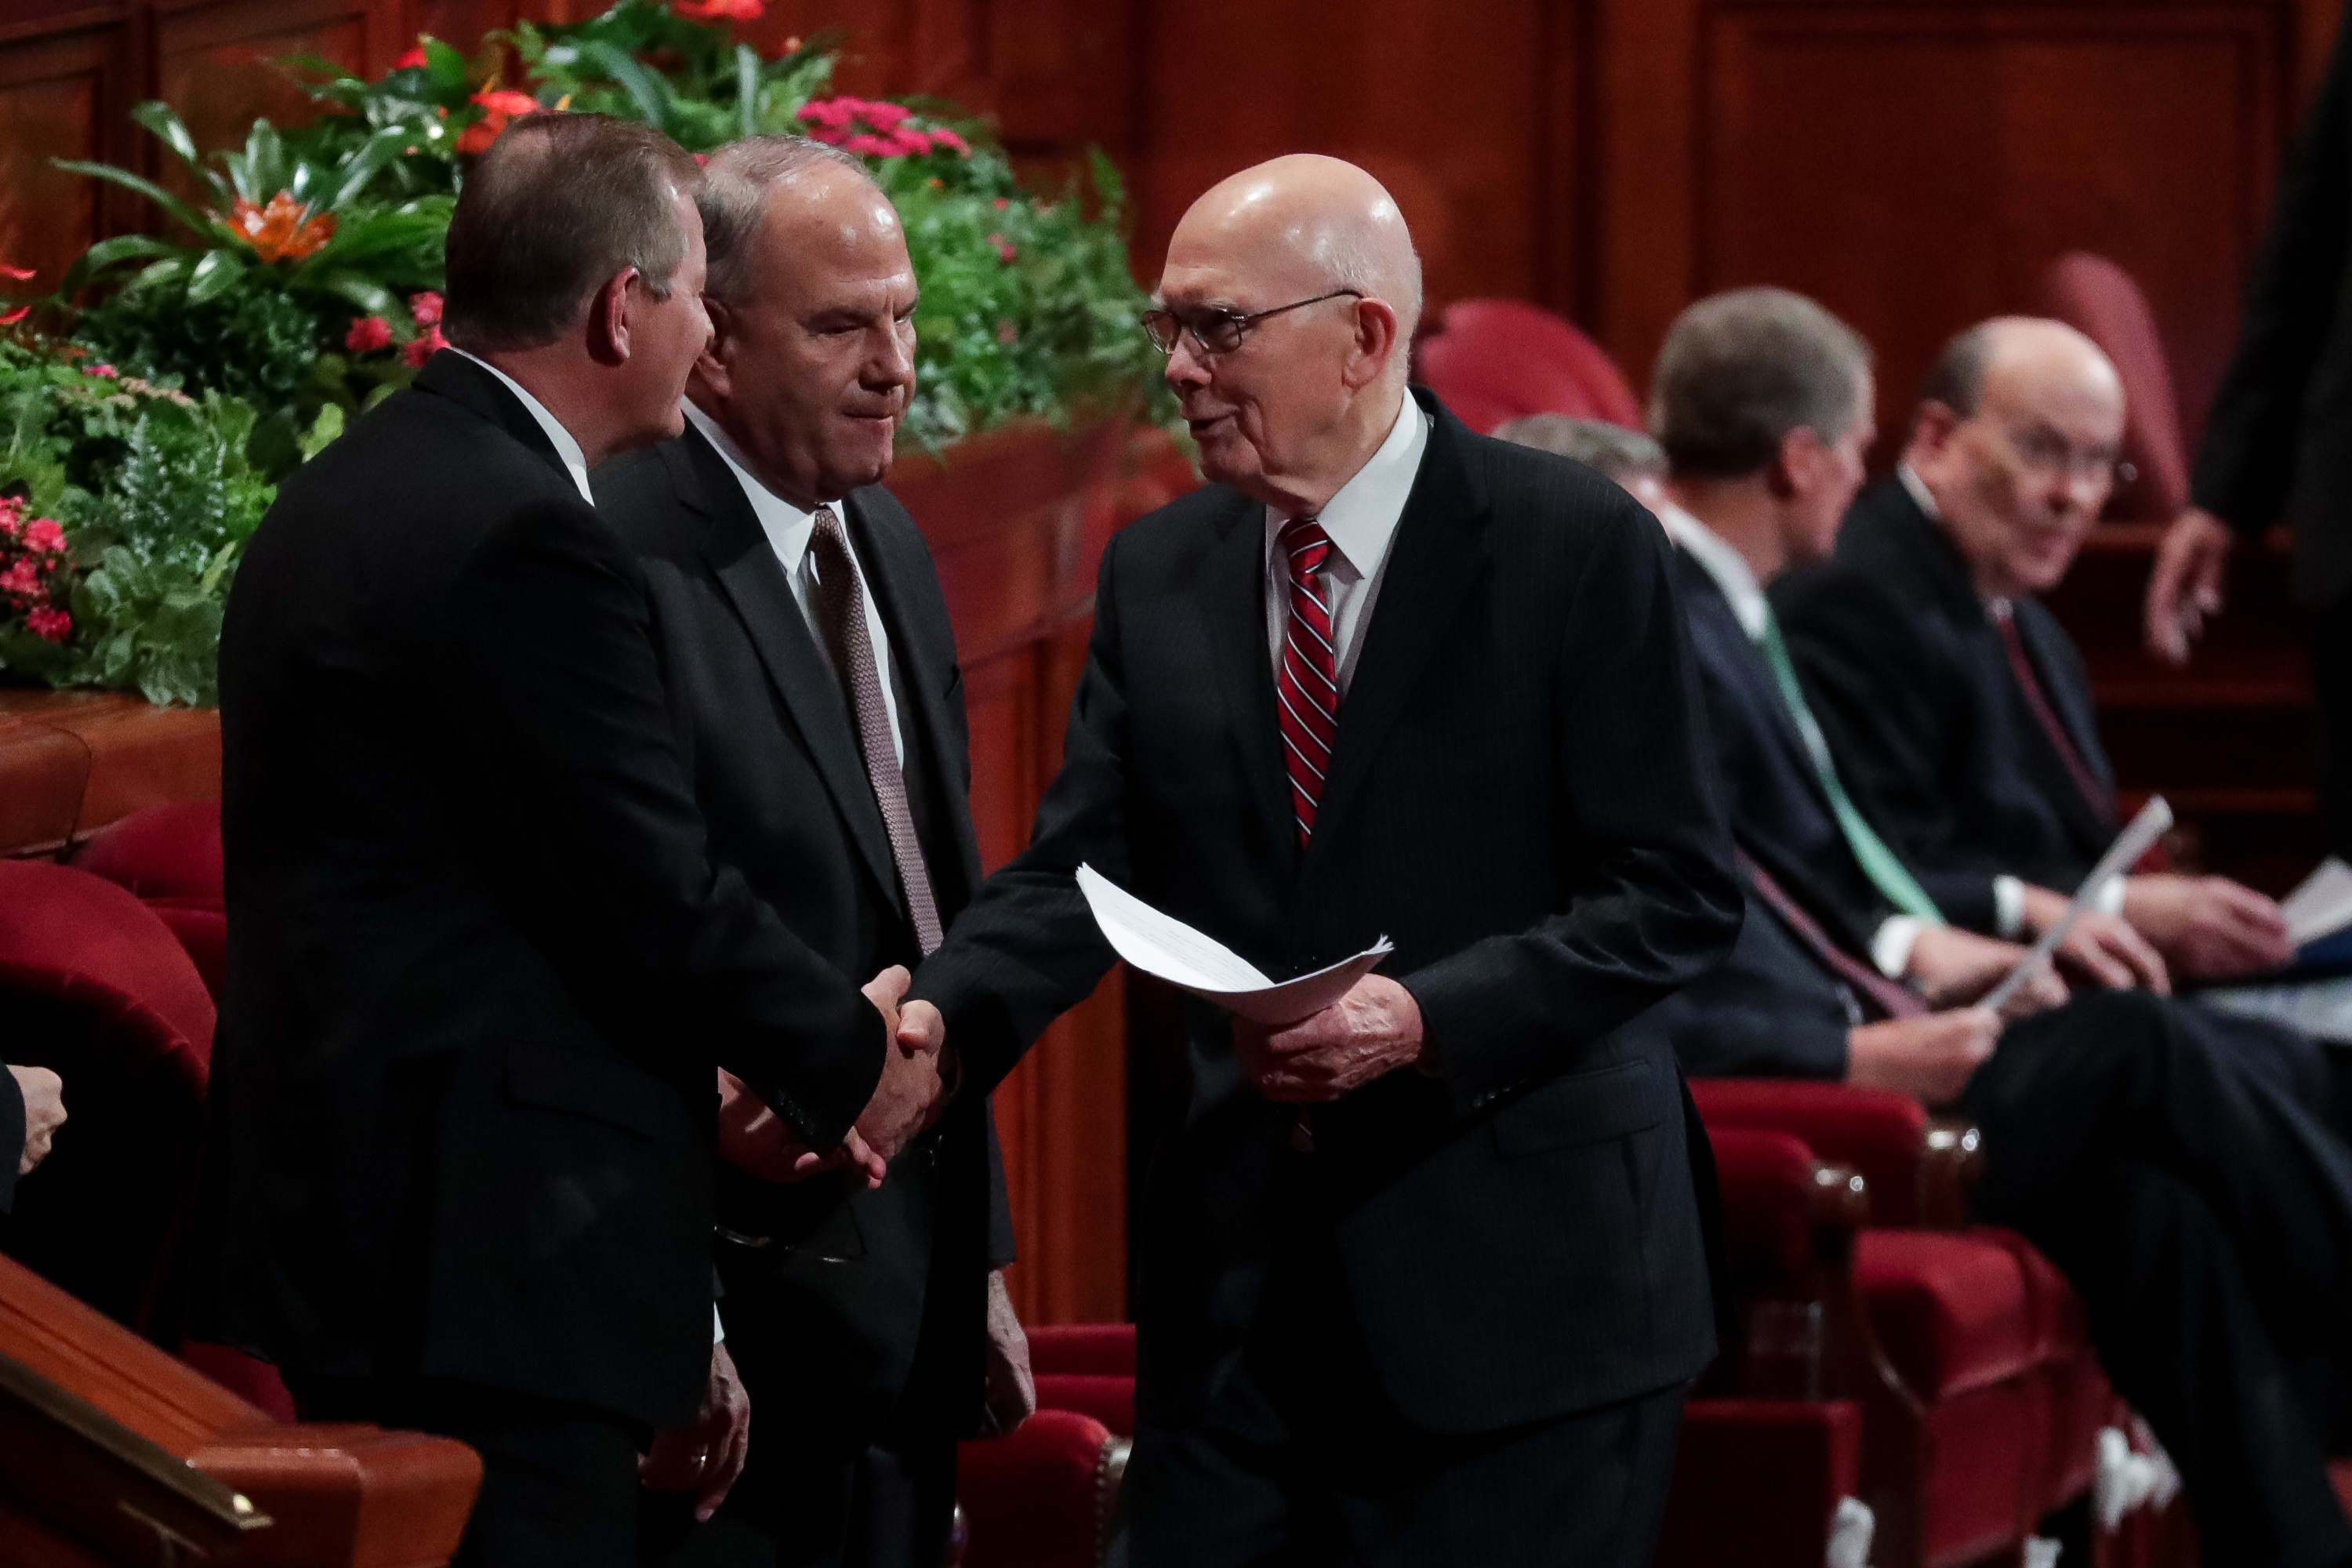 President Dallin H. Oaks, first counselor in the First Presidency, greets Elder Gary E. Stevenson, left, and Elder Ronald A. Rasband, center, both of the Quorum of the Twelve Apostles, before the start of the Saturday morning session of the 188th Semiannual General Conference of The Church of Jesus Christ of Latter-day Saints in the Conference Center in Salt Lake City on Saturday, Oct. 6, 2018.